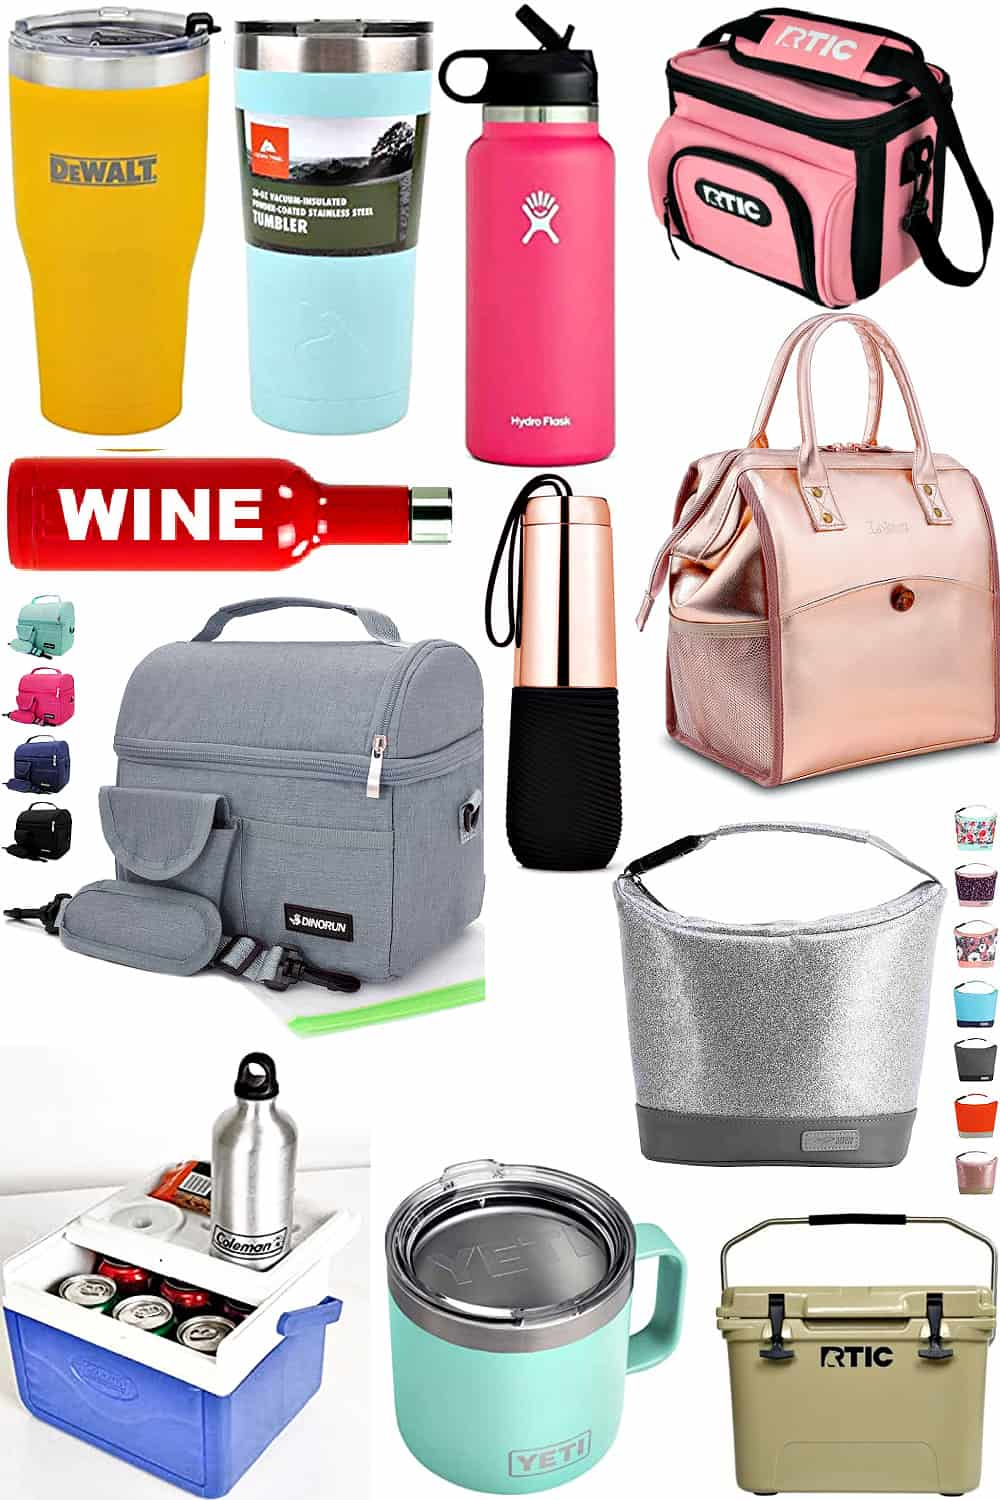 The best tumblers and coolers for gifts includes rose gold and silver for men